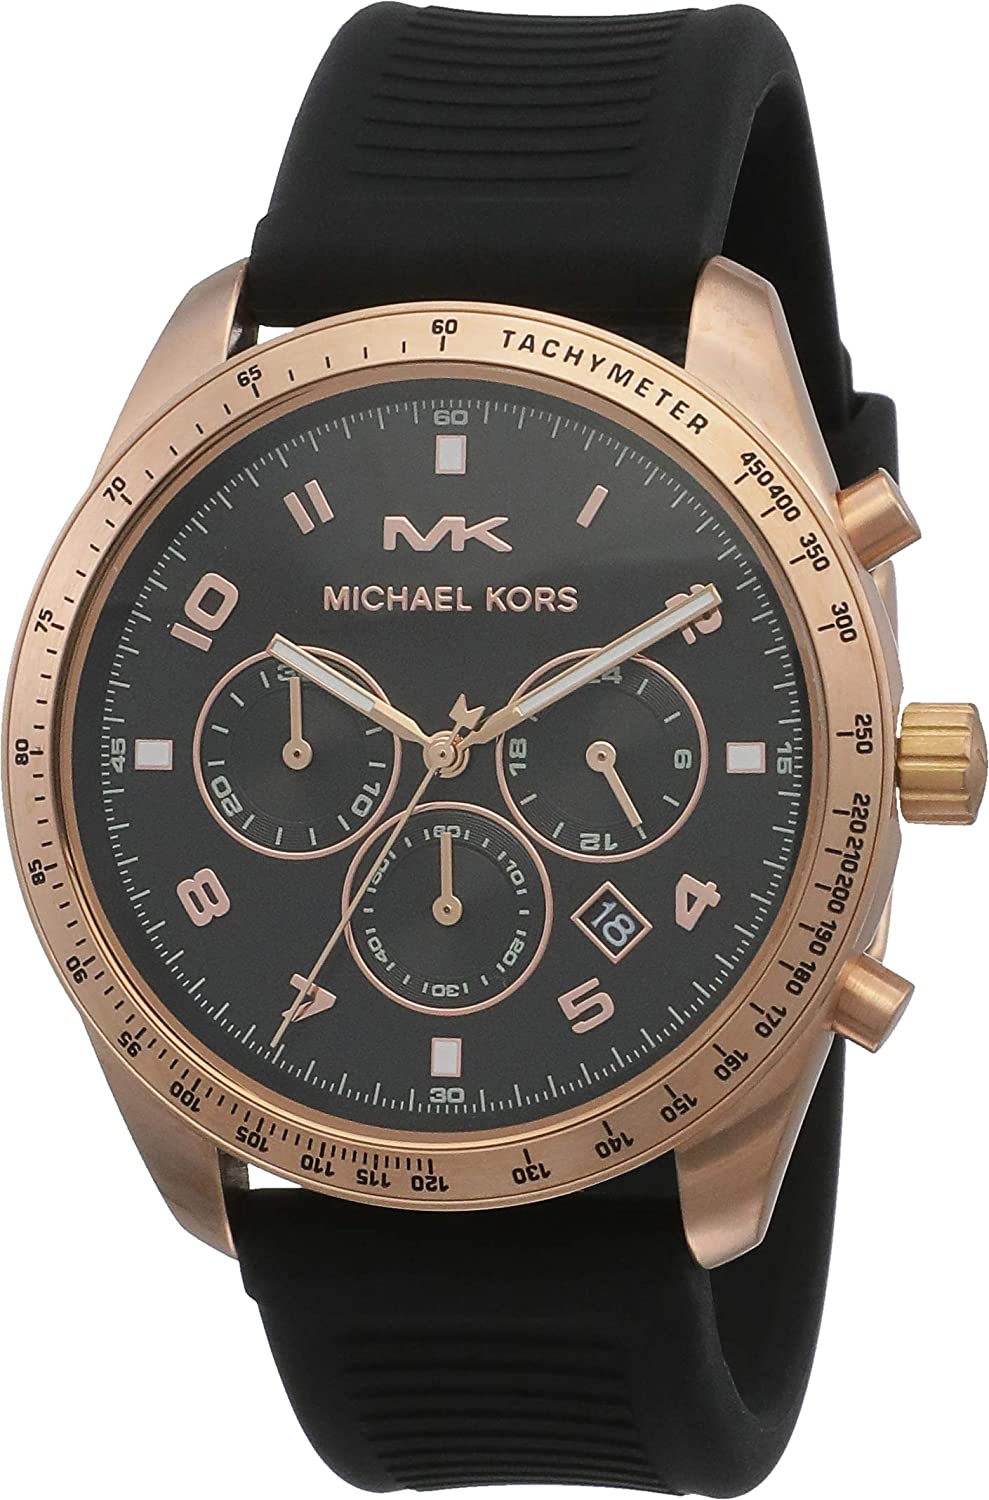 Michael Kors Men's Keaton Stainless Sili with Max 63% OFF Limited time trial price Steel Quartz Watch